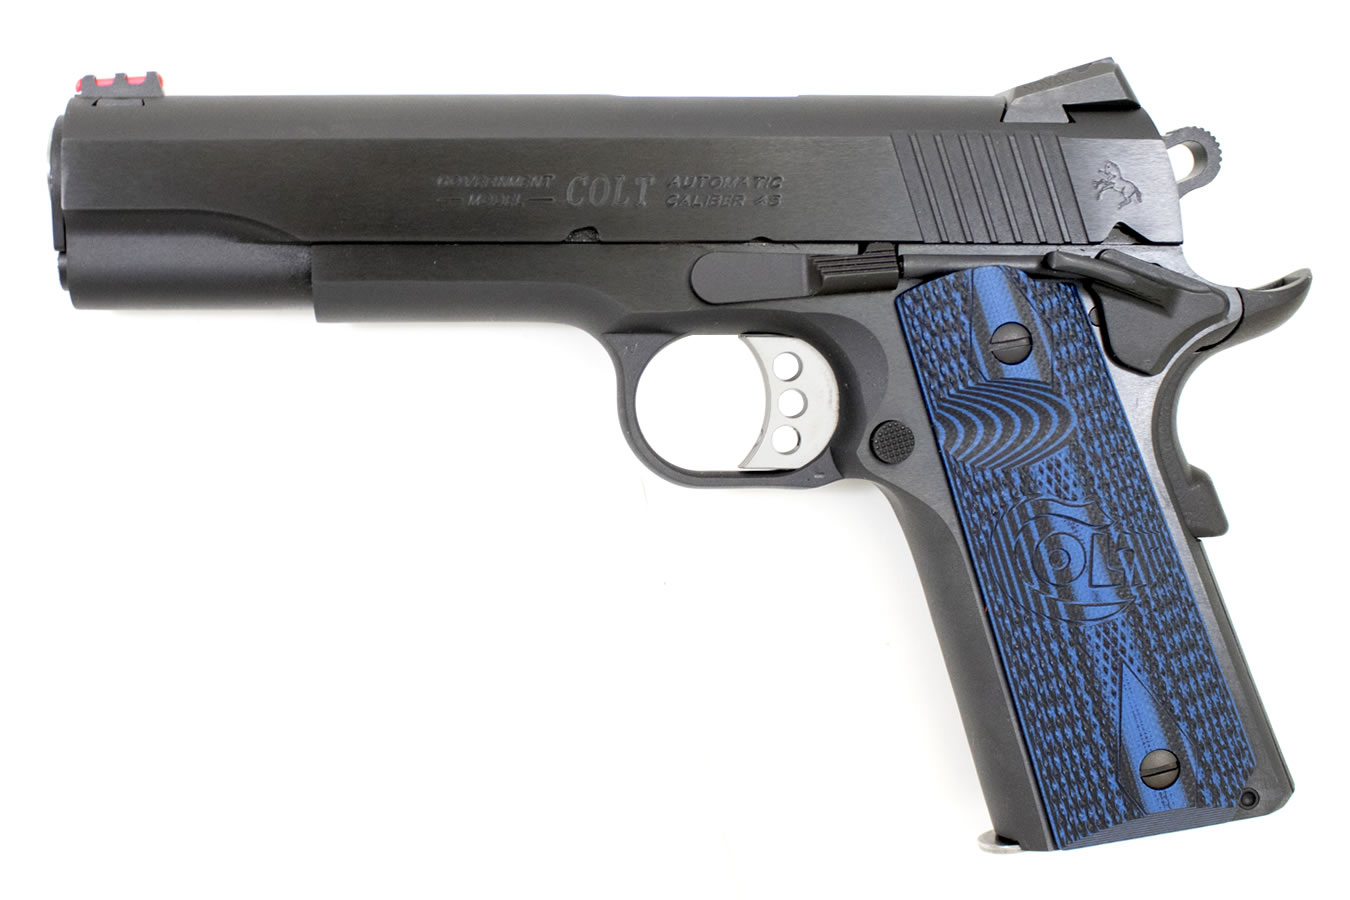 No. 1 Best Selling: COLT 1911 SERIES 70 COMPETITION 45 ACP